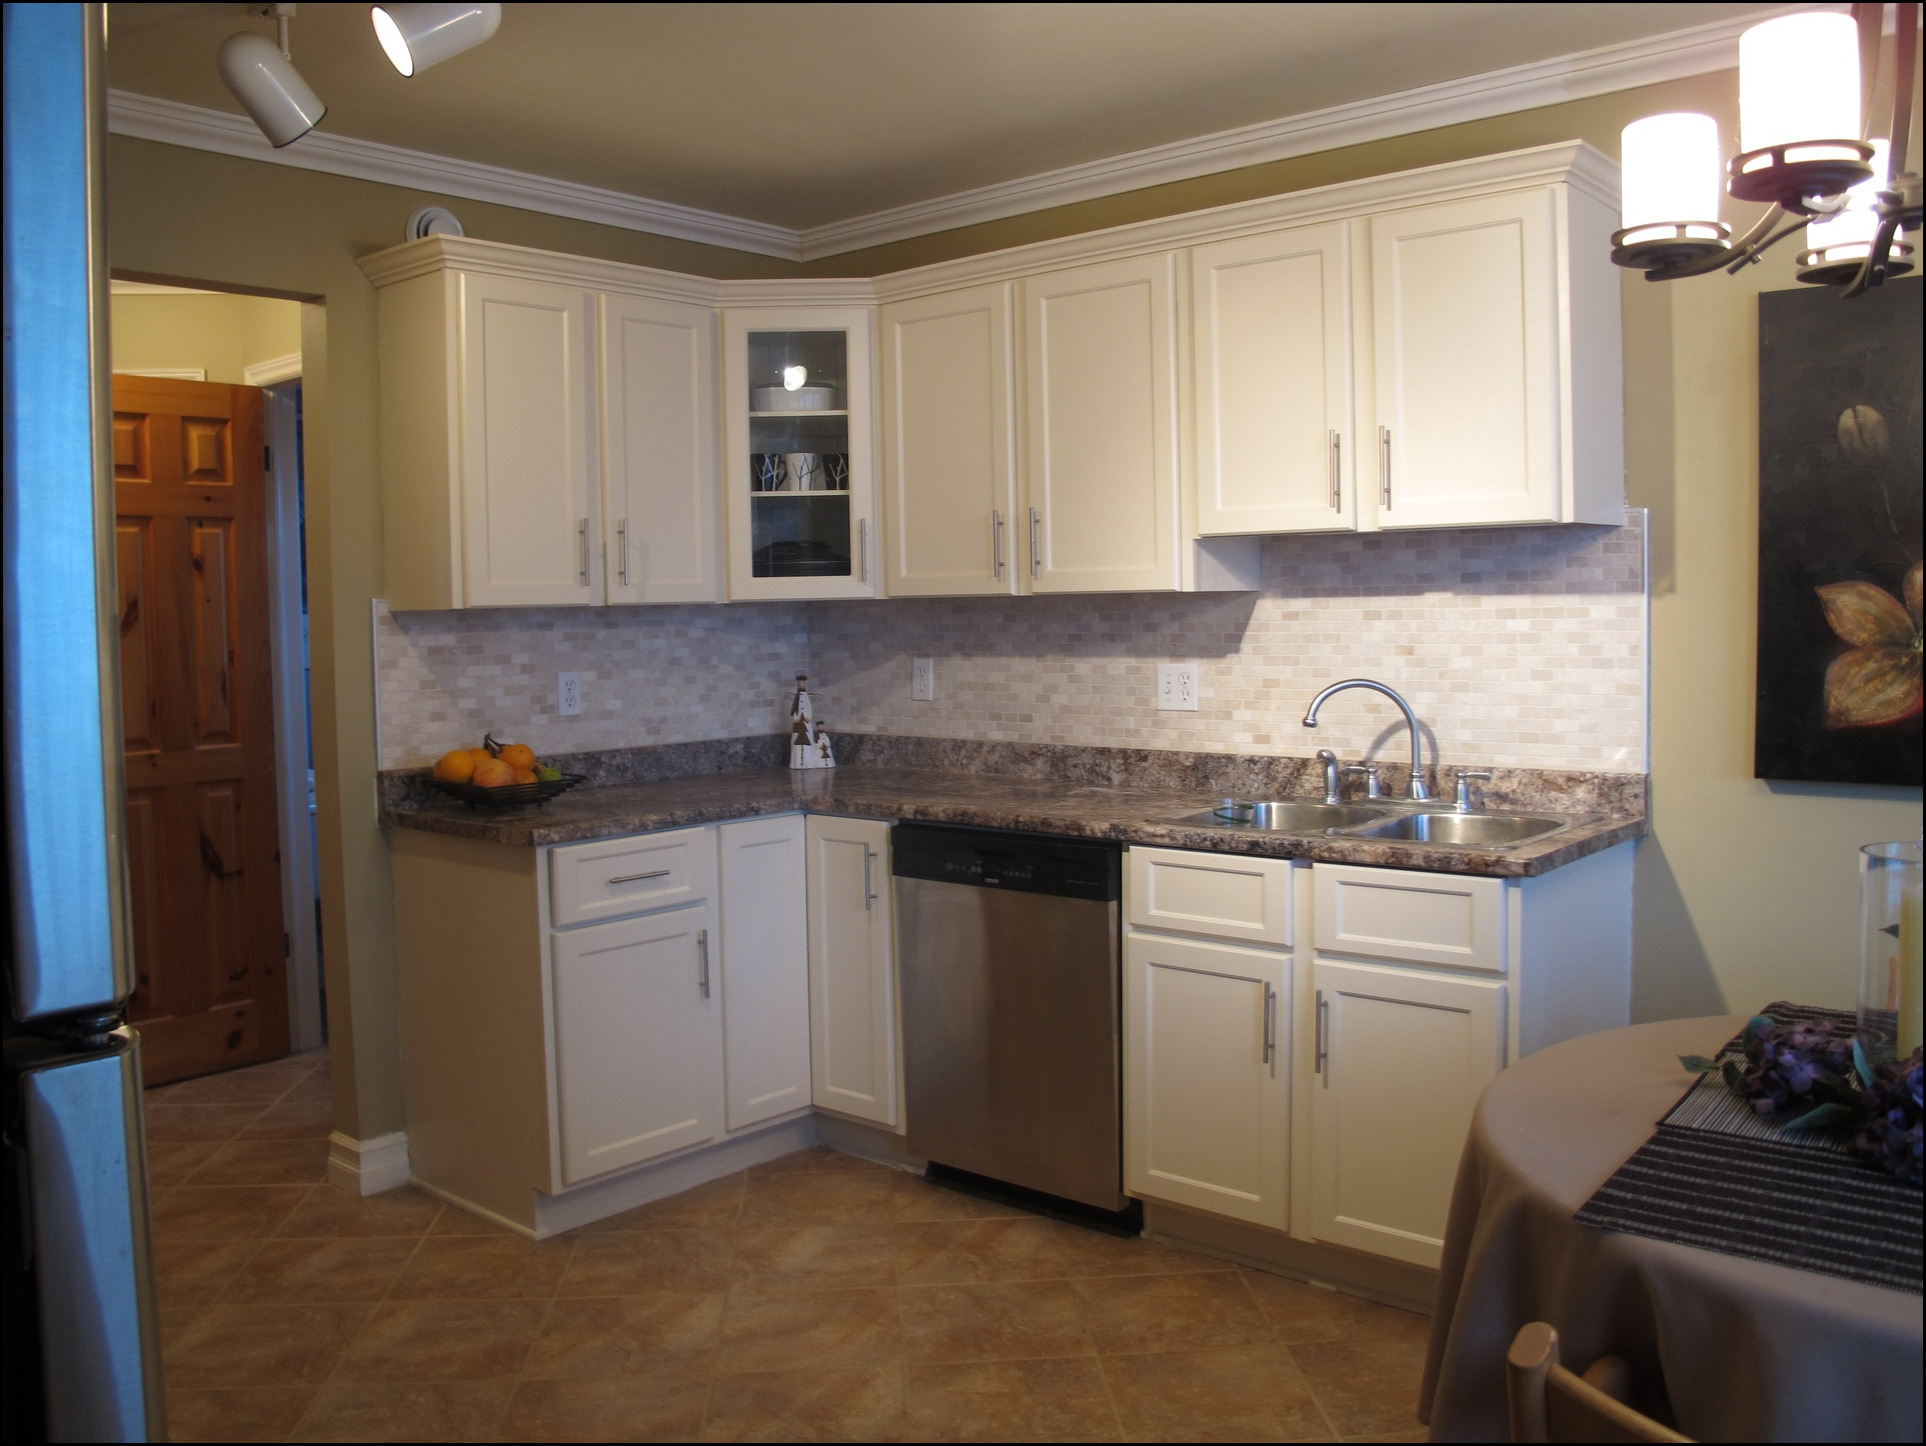 average cost for kitchen cabinets designer colors costs per linear foot sophisticated